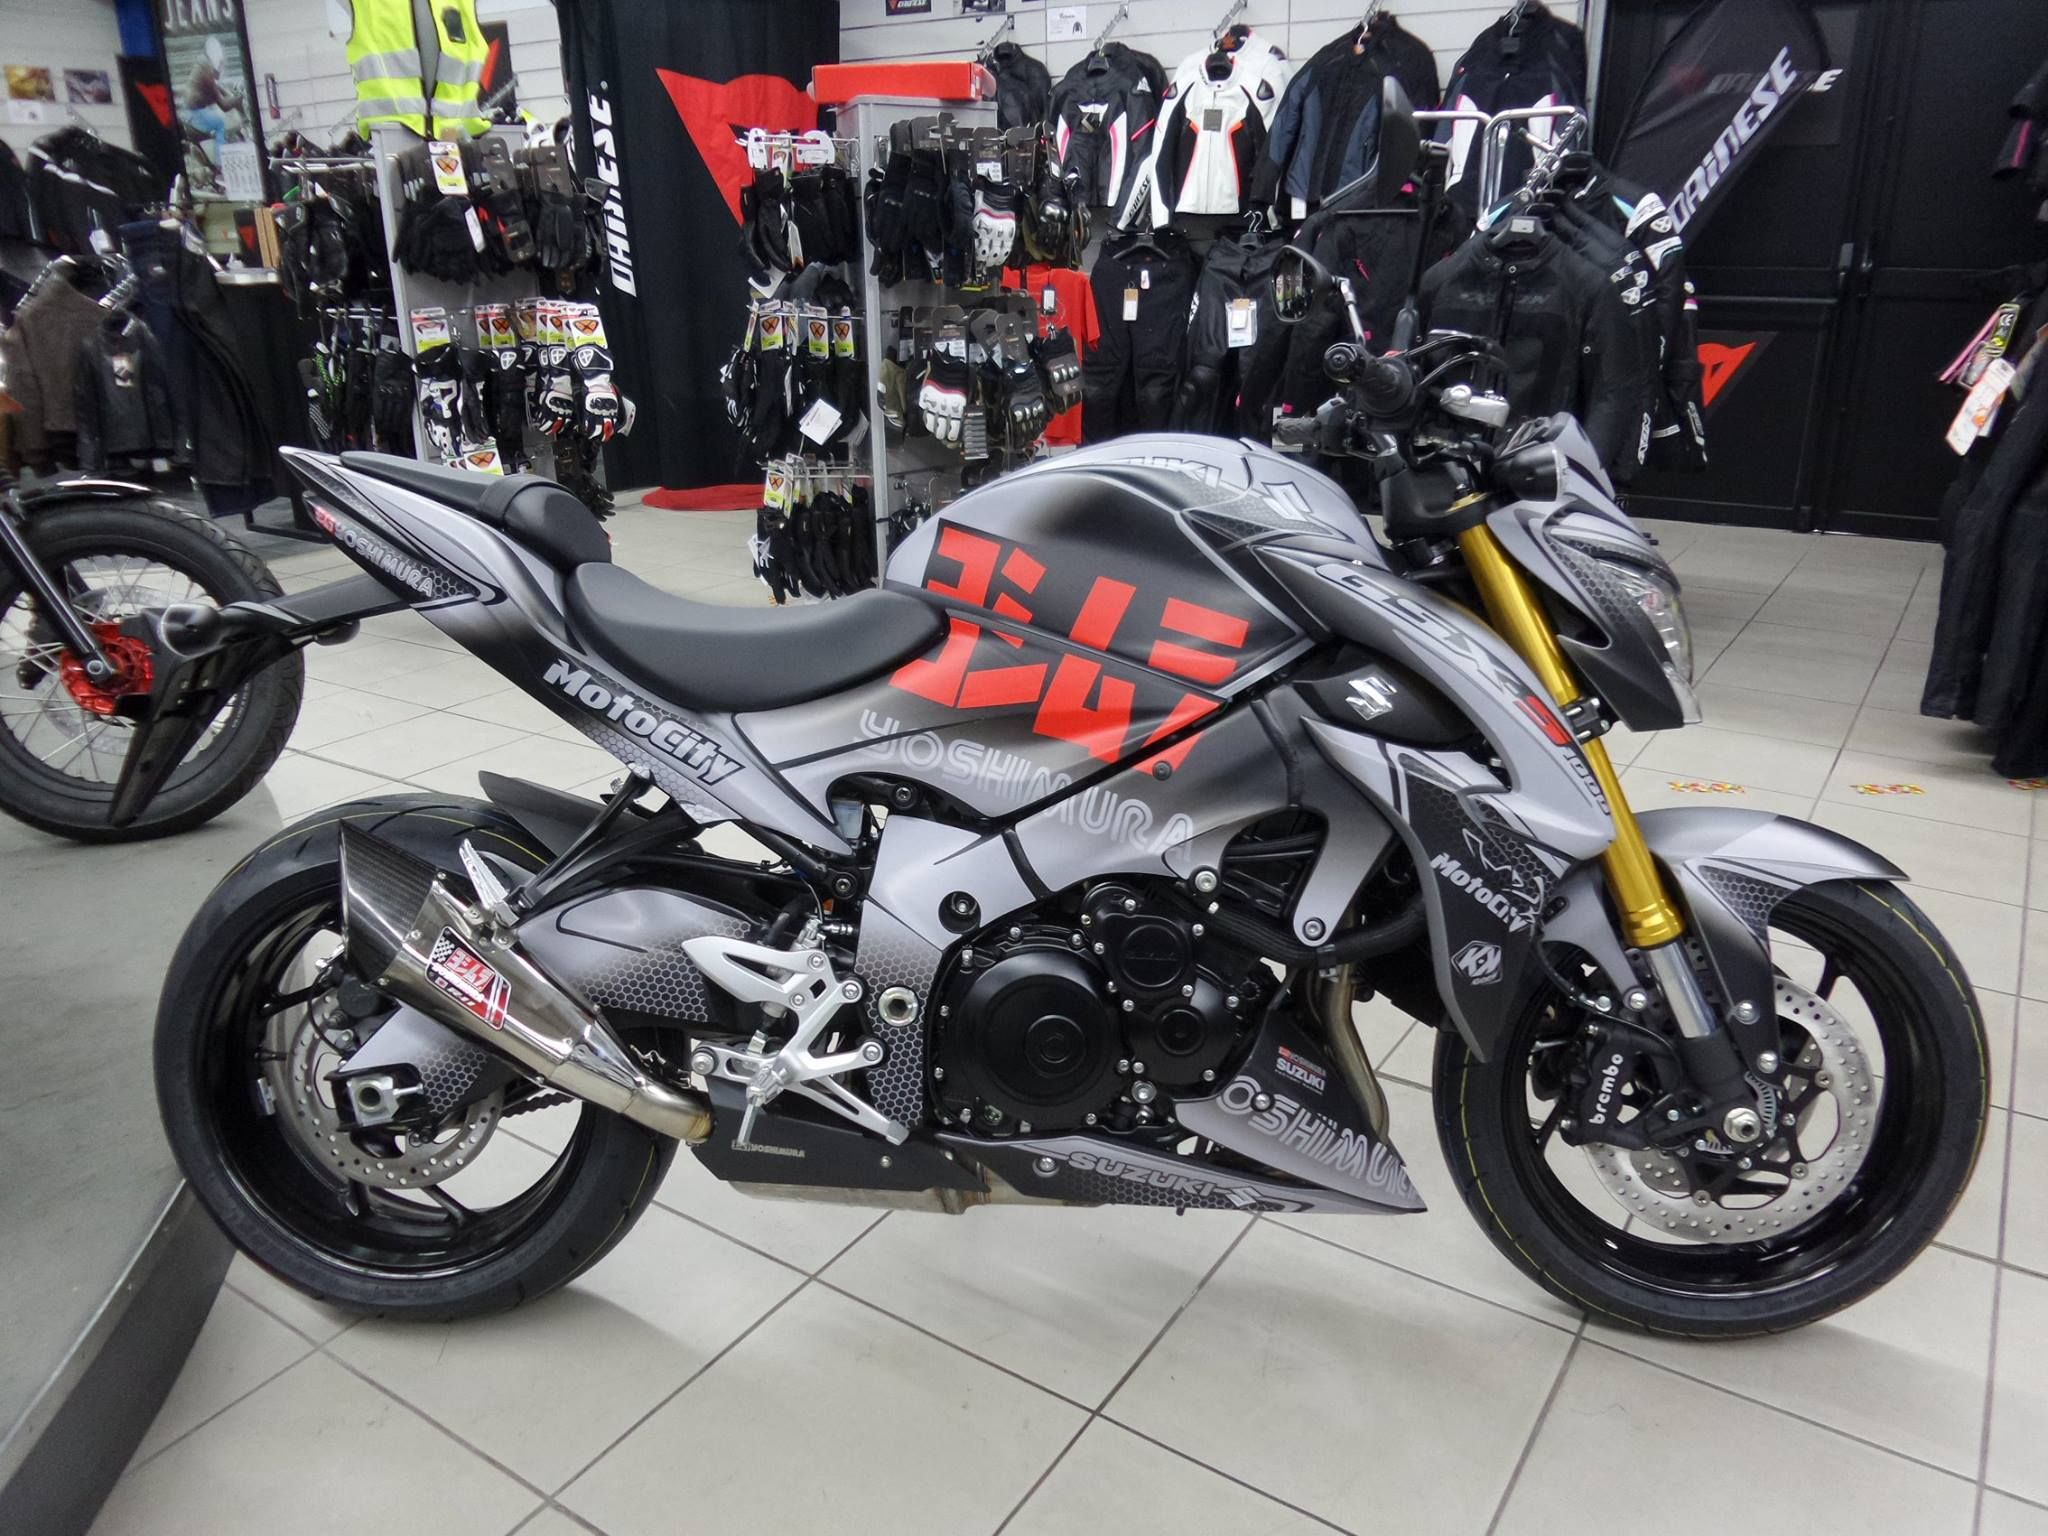 suzuki gsx s 1000 yoshimura suzuki gsxs1000 suzuki gsx. Black Bedroom Furniture Sets. Home Design Ideas